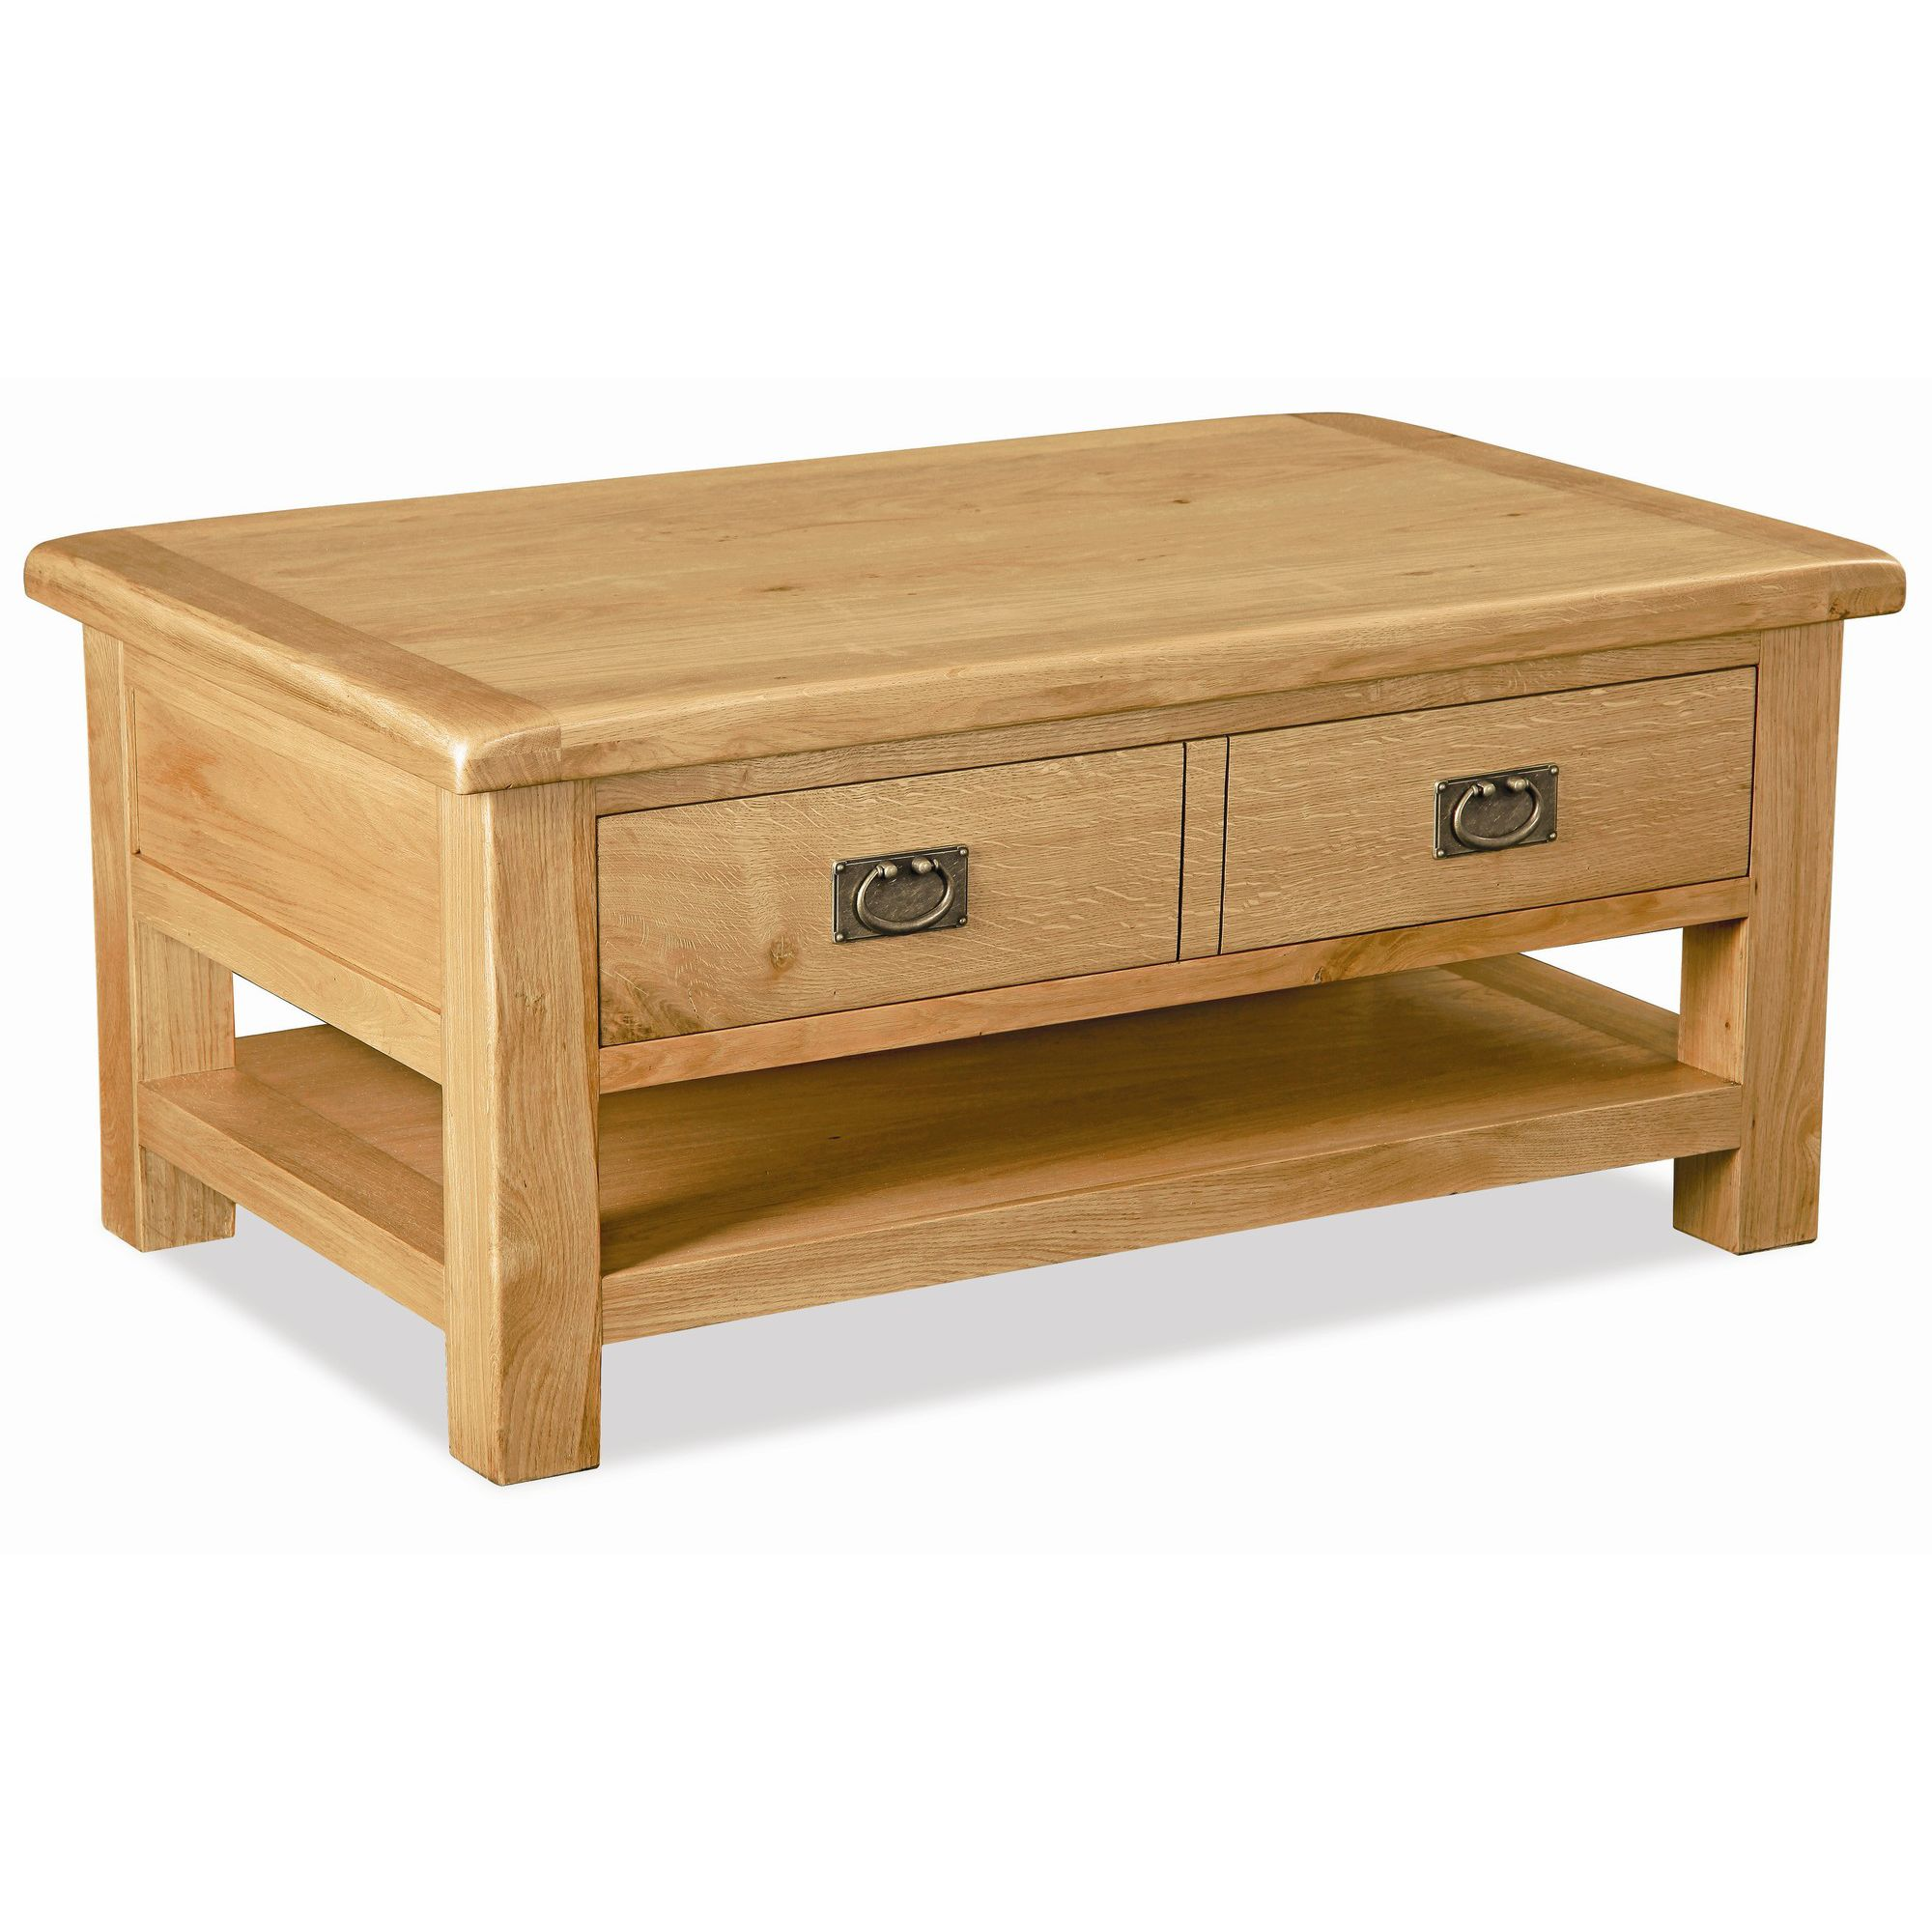 Alterton Furniture Pemberley Large Coffee Table with Drawer And Shelf at Tesco Direct